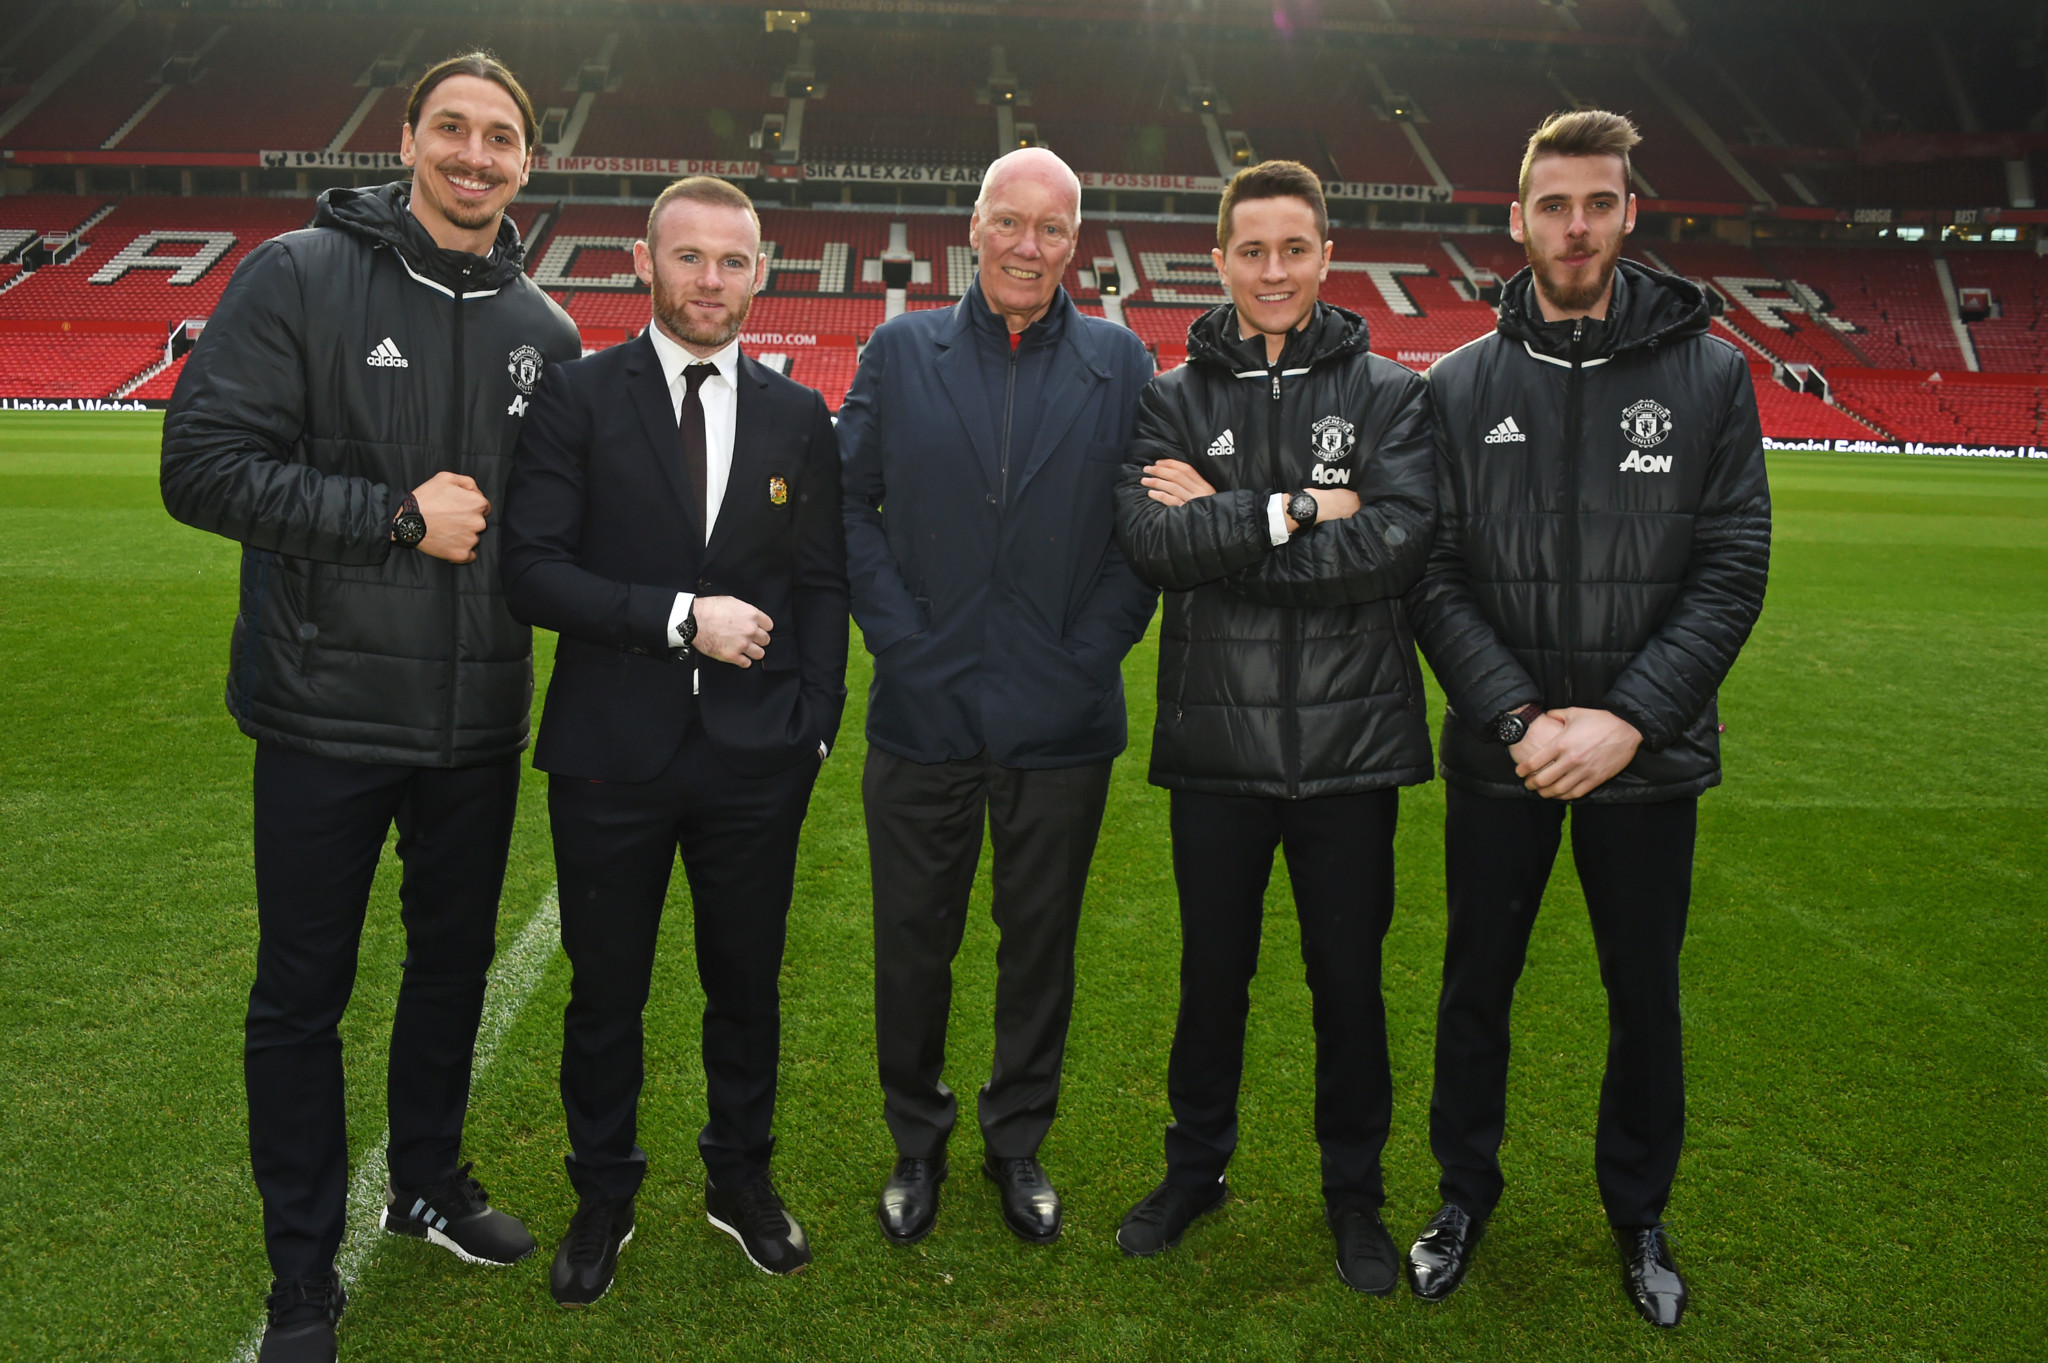 MANCHESTER, ENGLAND - FEBRUARY 08:  Zlatan Ibrahimovic, Wayne Rooney, Jean-Claude Biver, TAG Heuer CEO and President of the LVMH Watch Division, Ander Herrera and David De Gea attend the launch of the TAG Heuer Manchester United partnered special editions at Old Trafford on February 8, 2017 in Manchester, England.    Pic Credit: Dave Benett